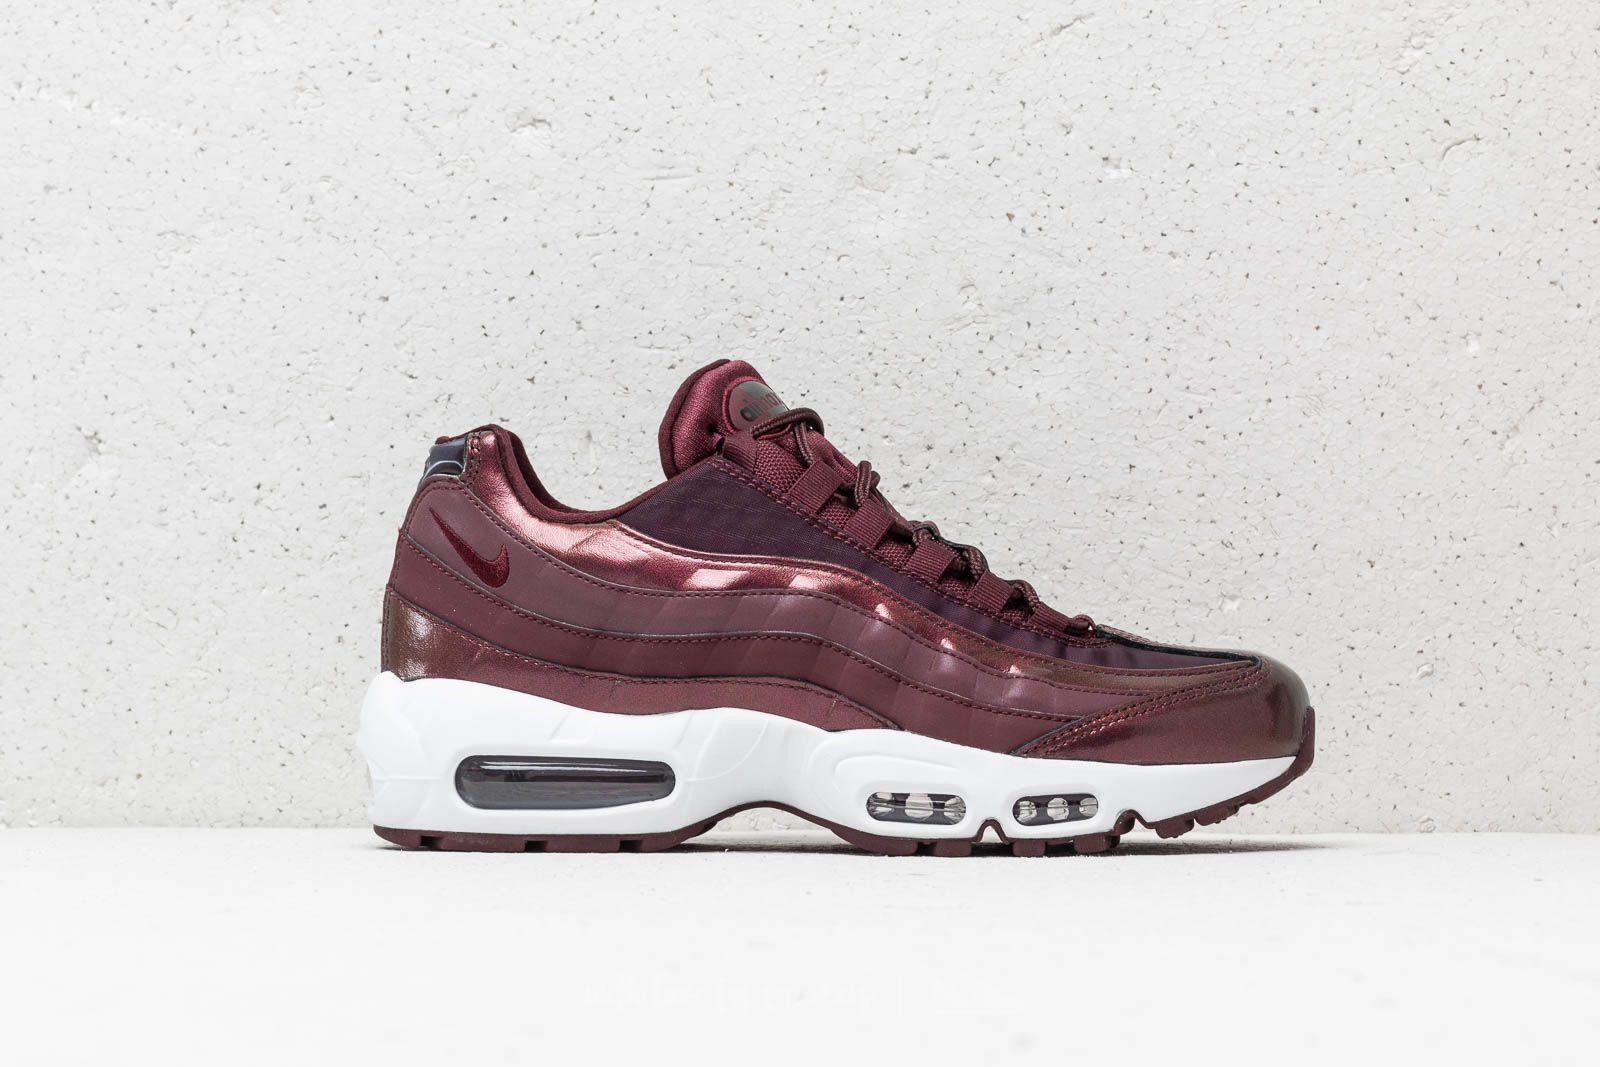 san francisco 52ea8 1eb4d Nike Air Max 95 Metallic Burgundy   The Sole Womens